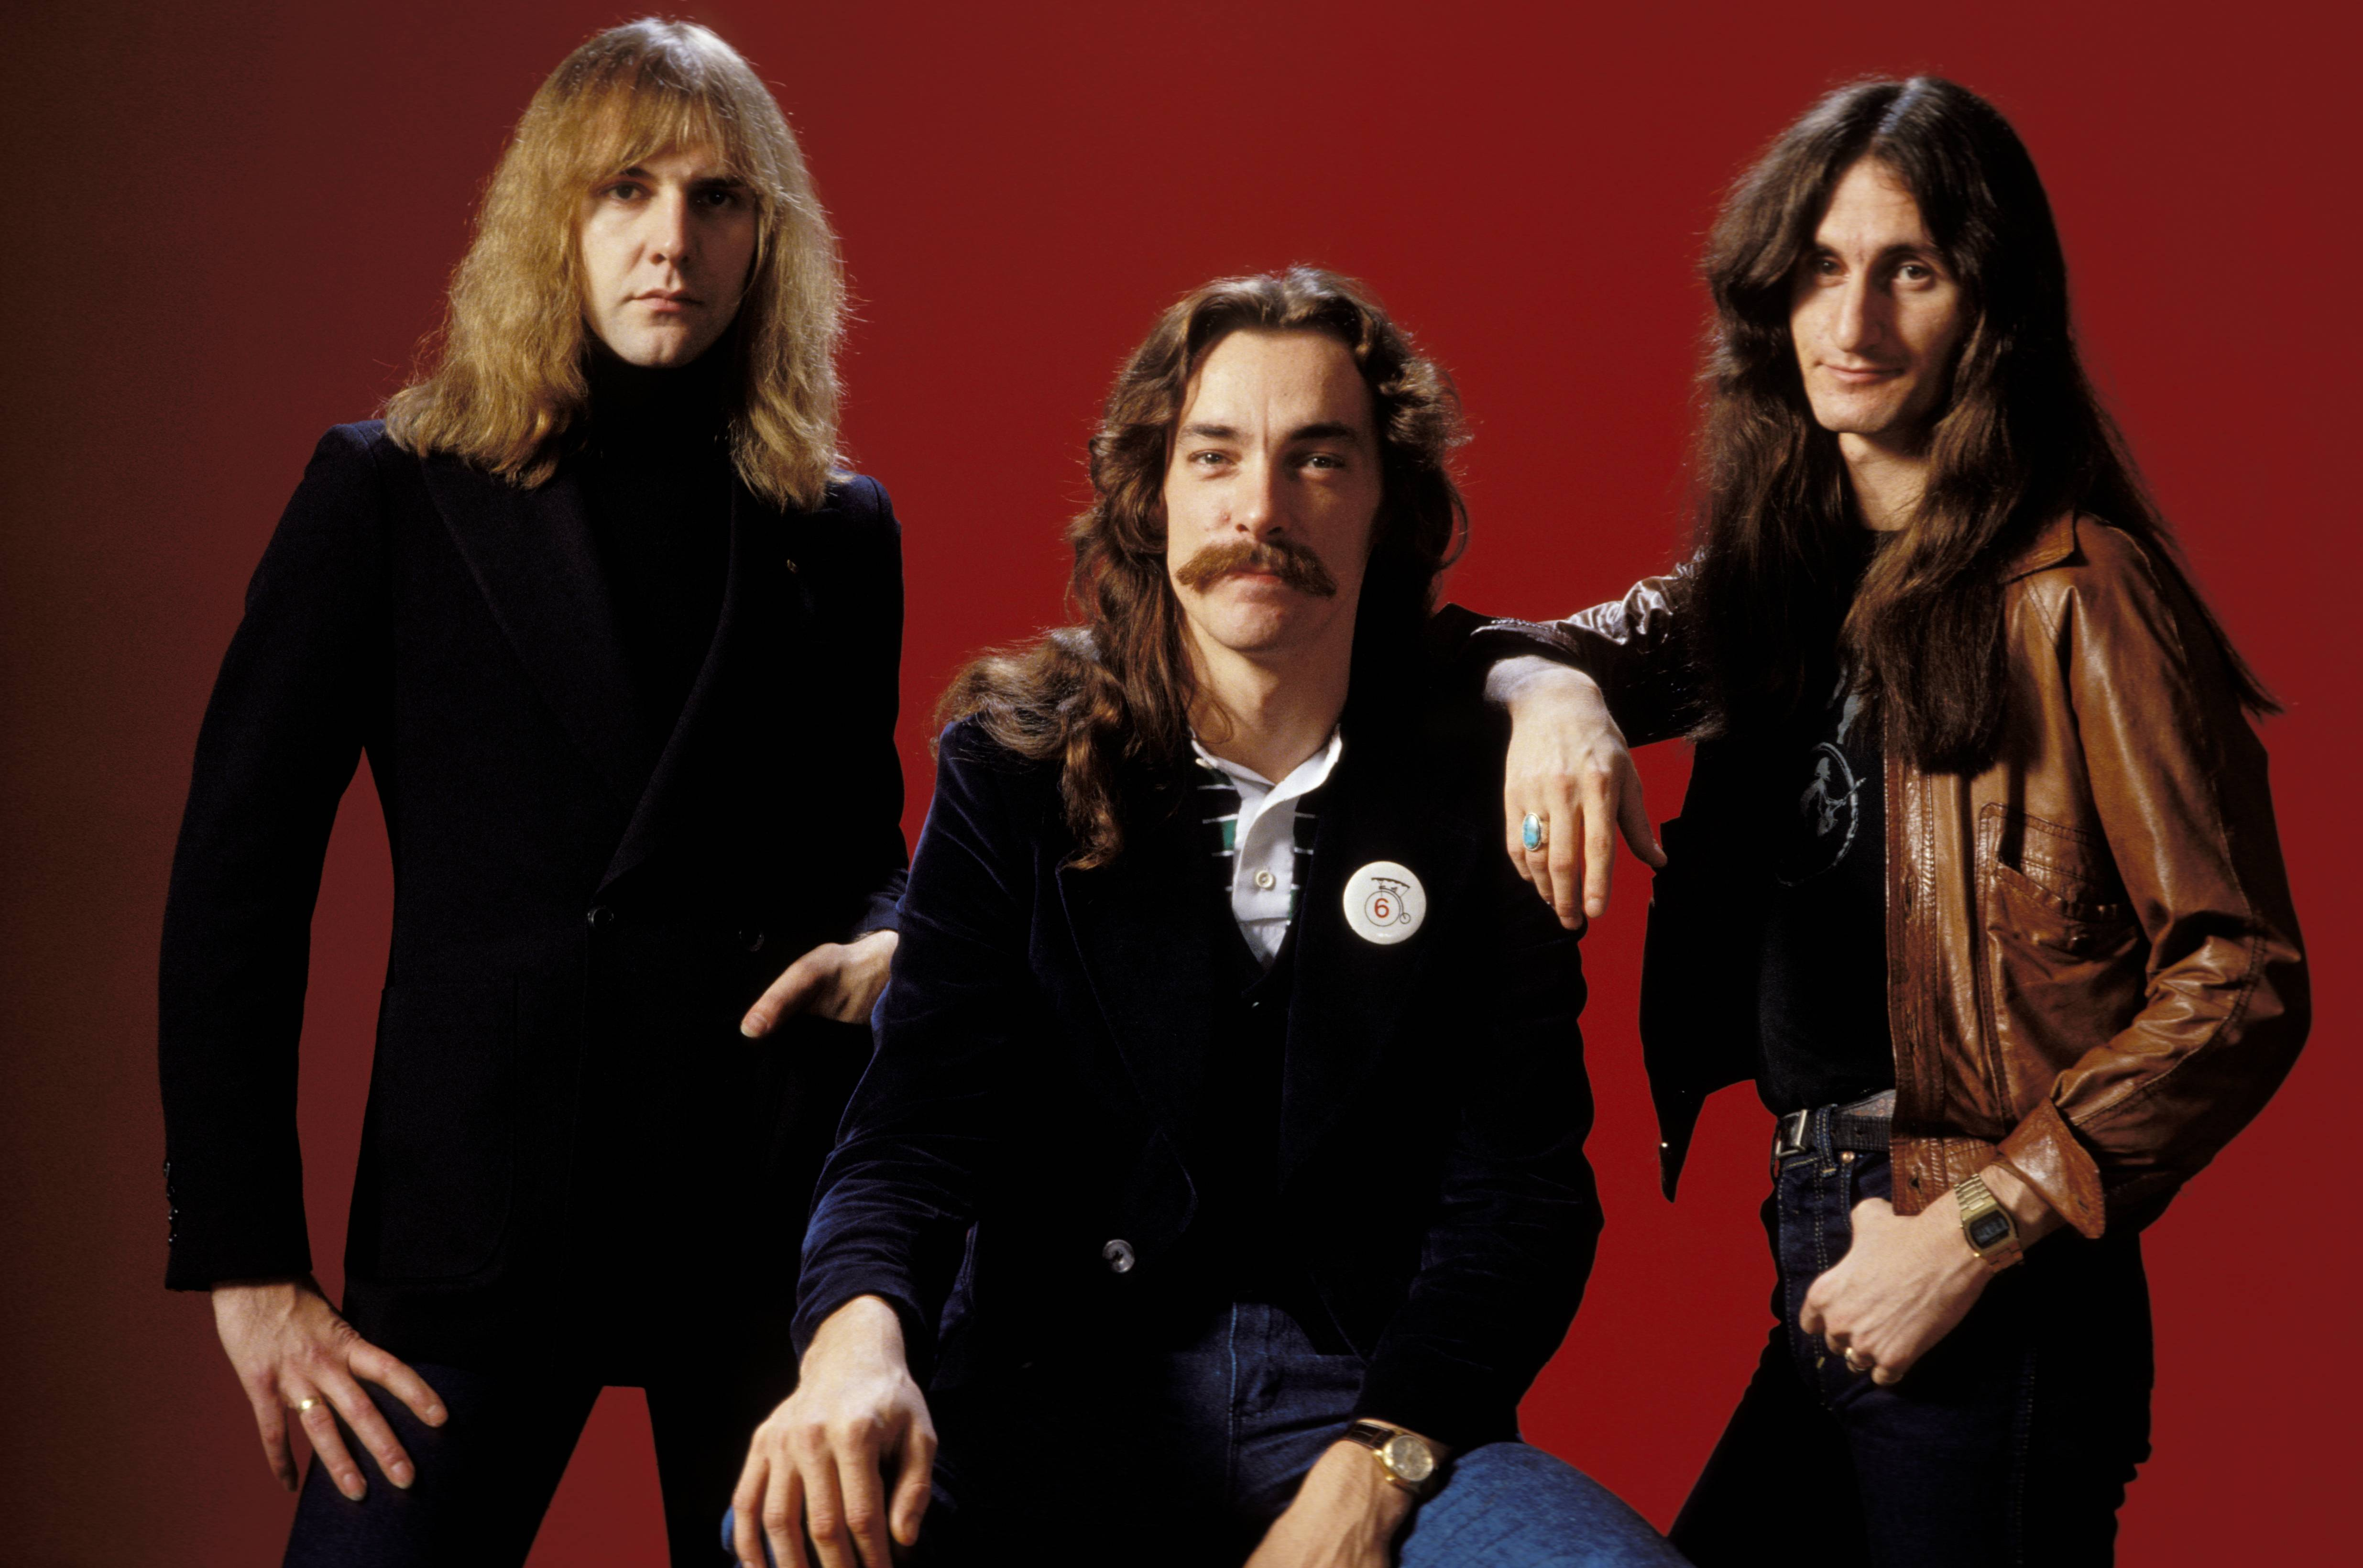 rush-geddy-lee-alex-lifeson-thank-fans-for-outpouring-of-love-following-neil-peart-death